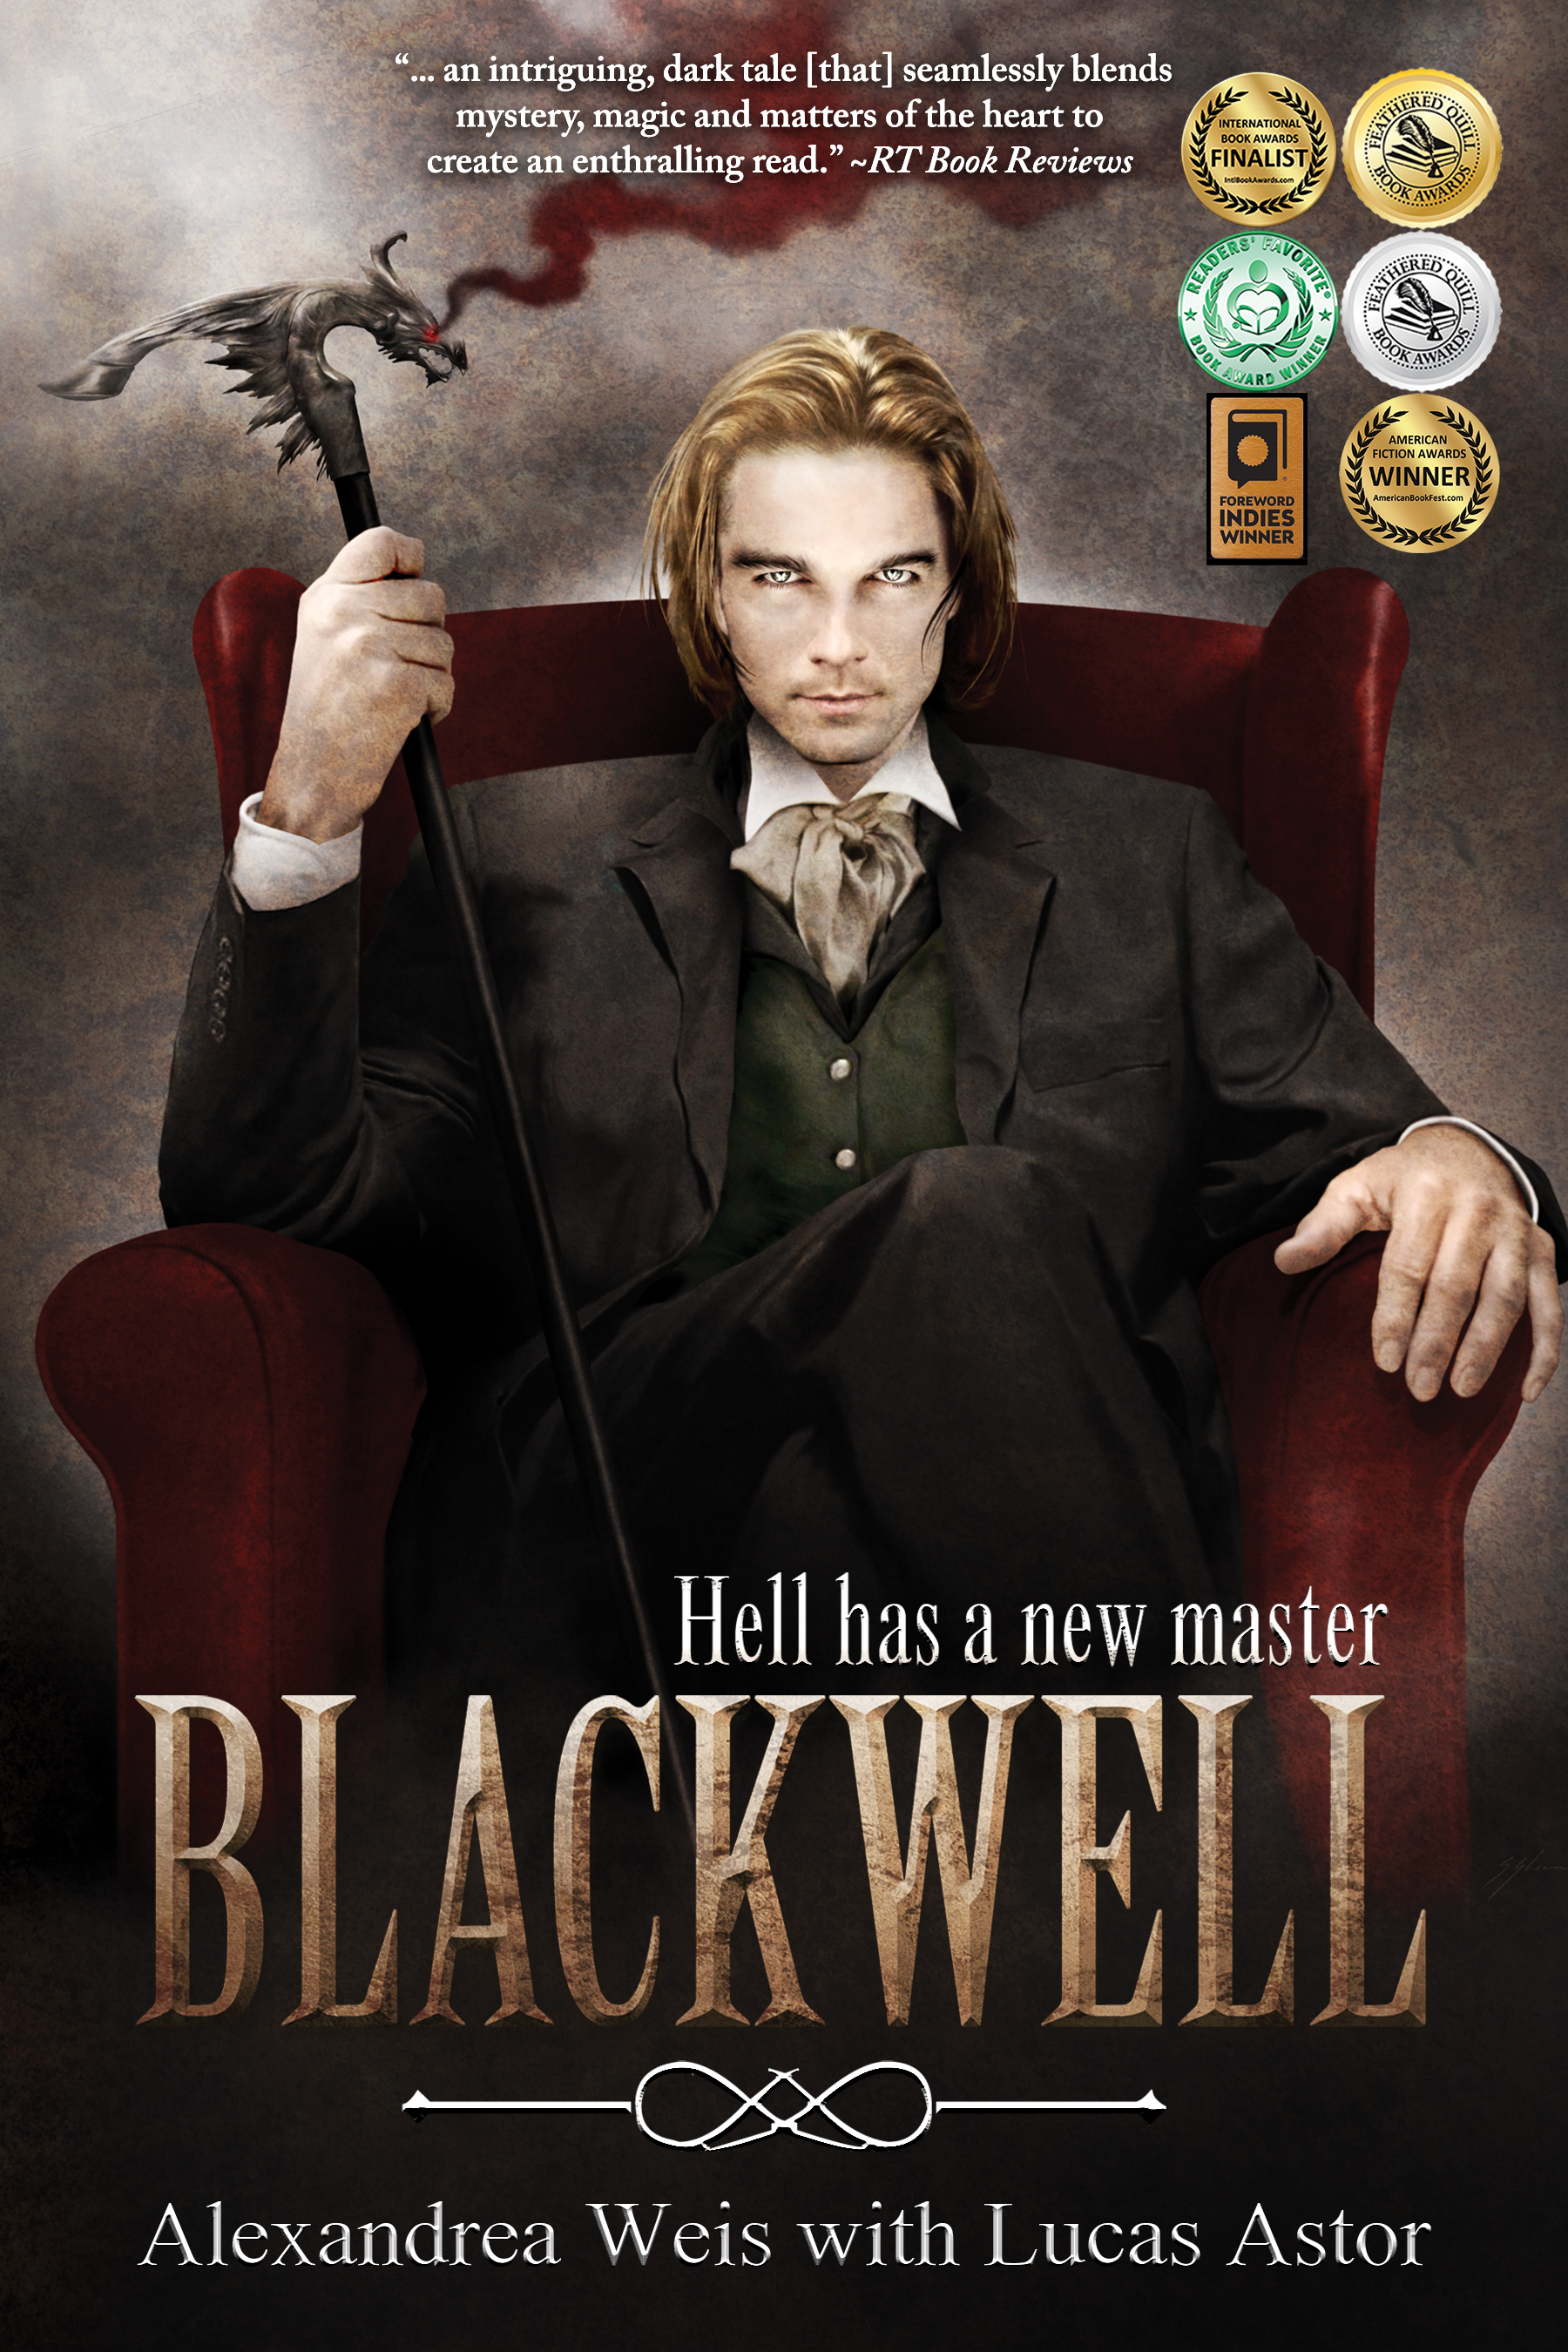 Blackwell by Alexandrea Weis with Lucas Astor